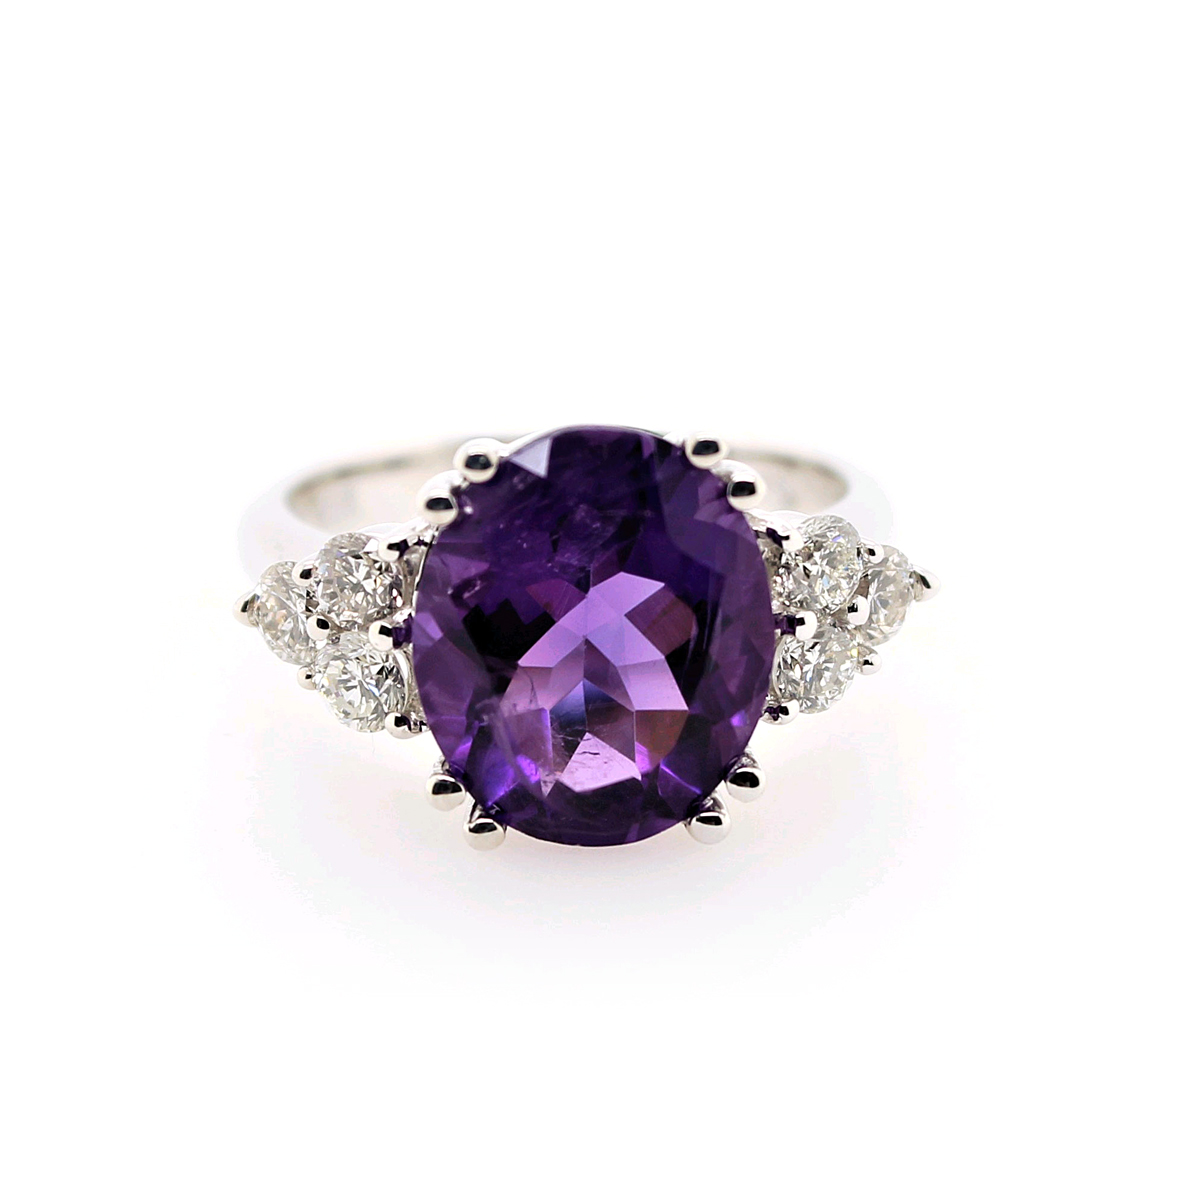 Ryan Gems 14 Karat White Gold Oval Faceted Amethyst and Diamond Ring